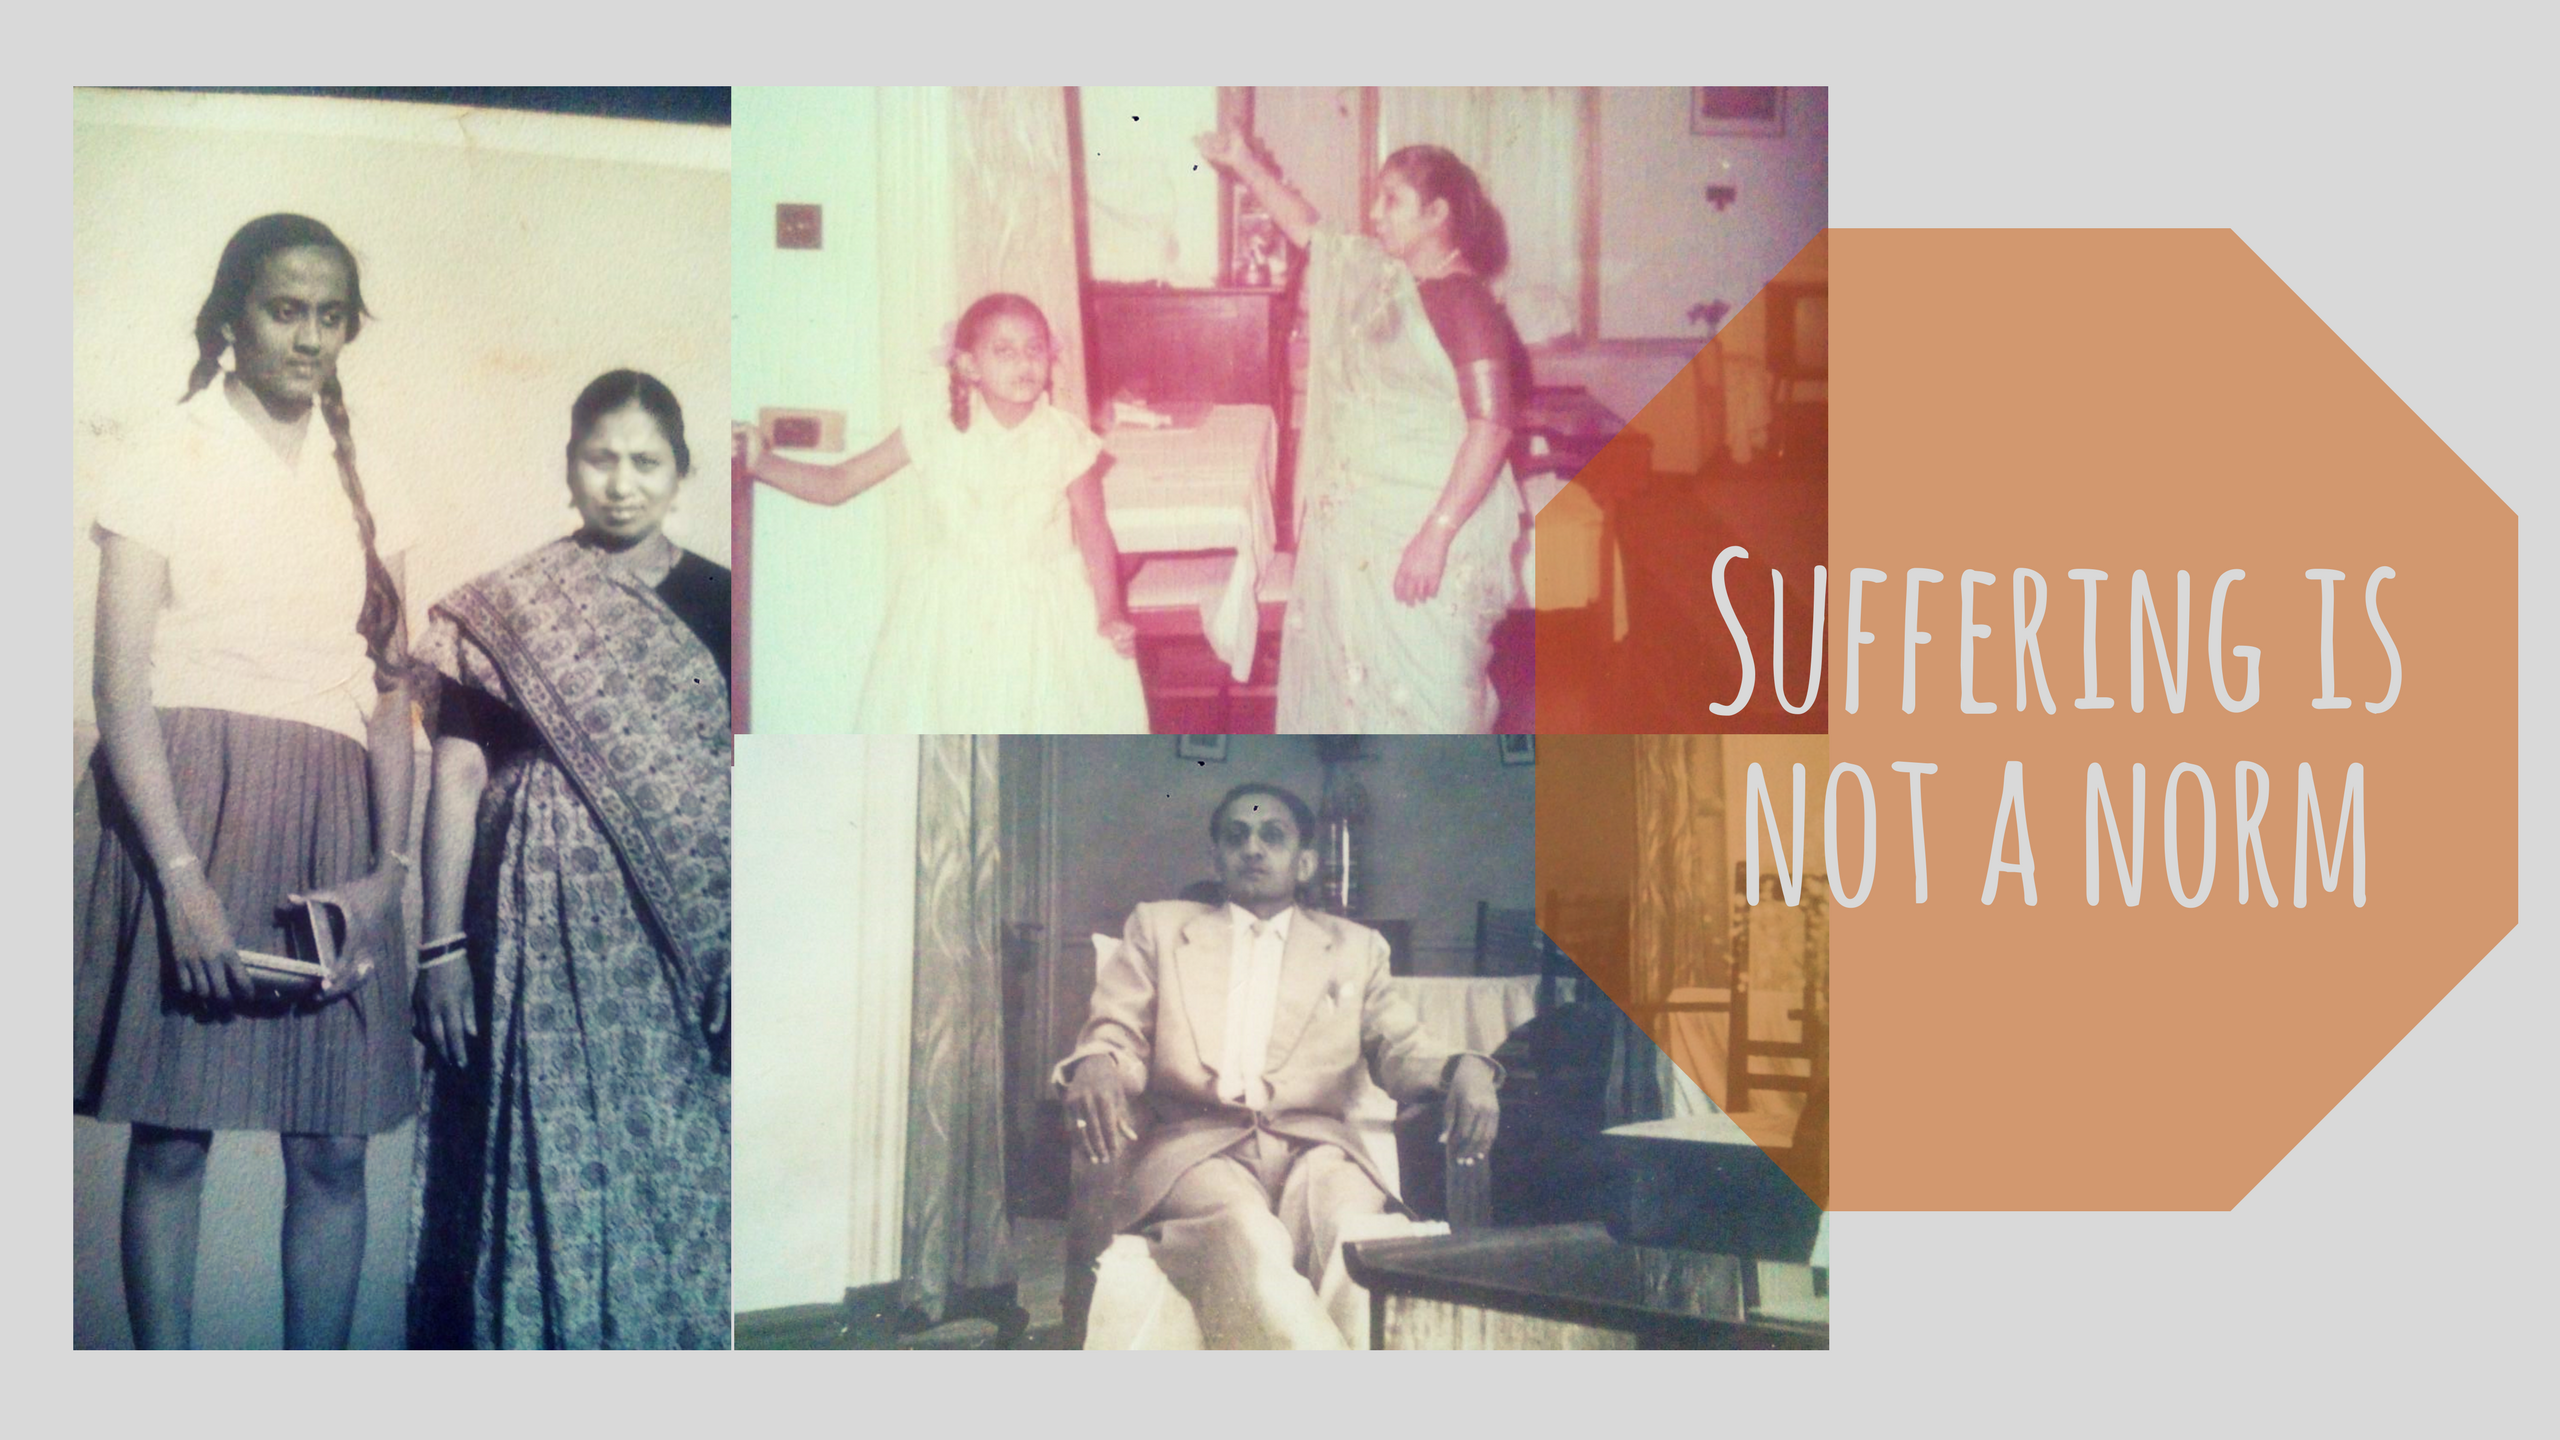 Suffering is not a norm.